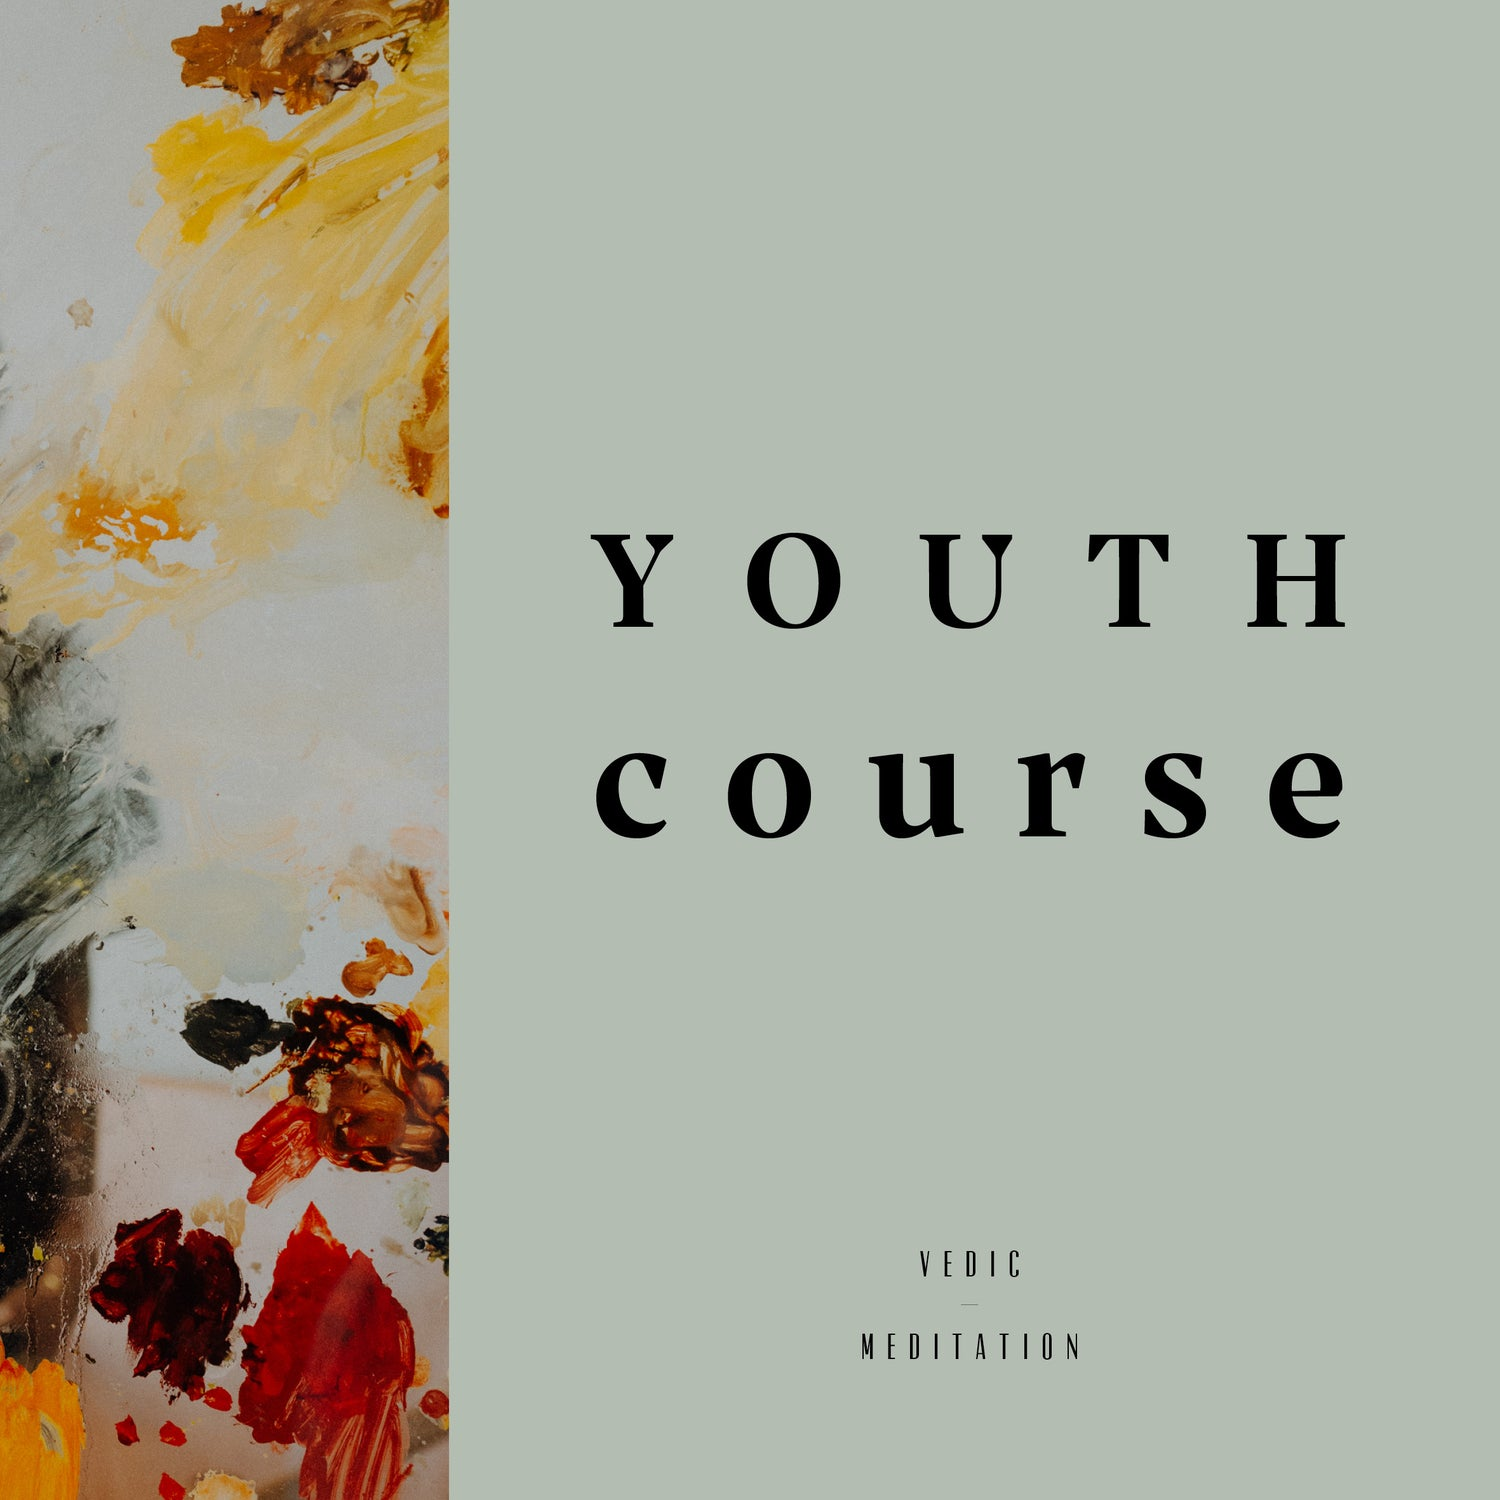 Image of Youth Course